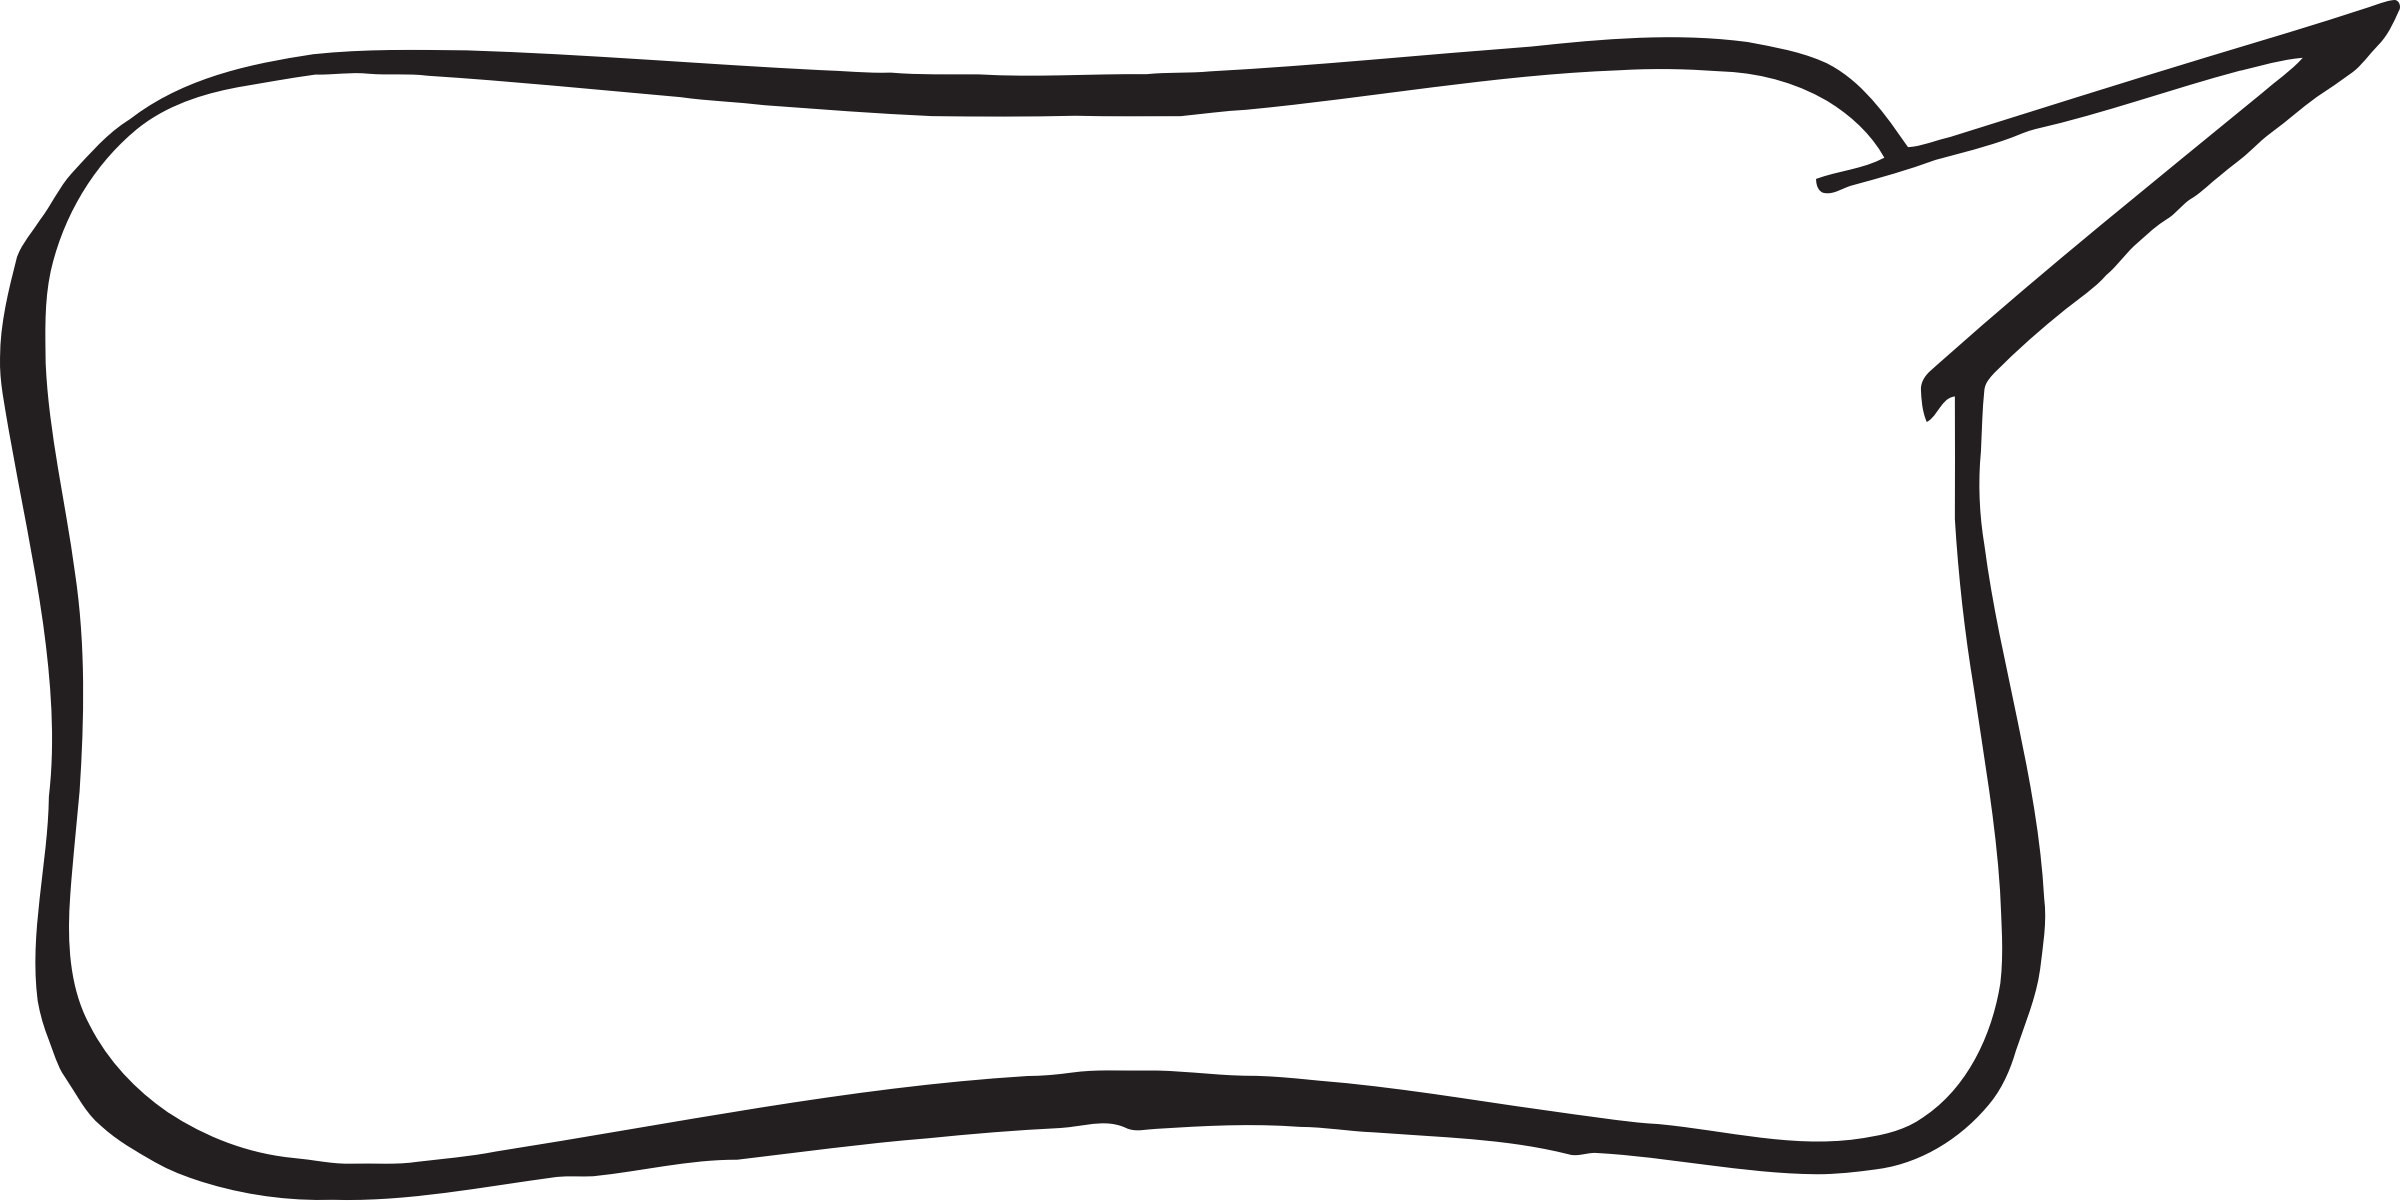 Boxes clipart text. Png box transparent images